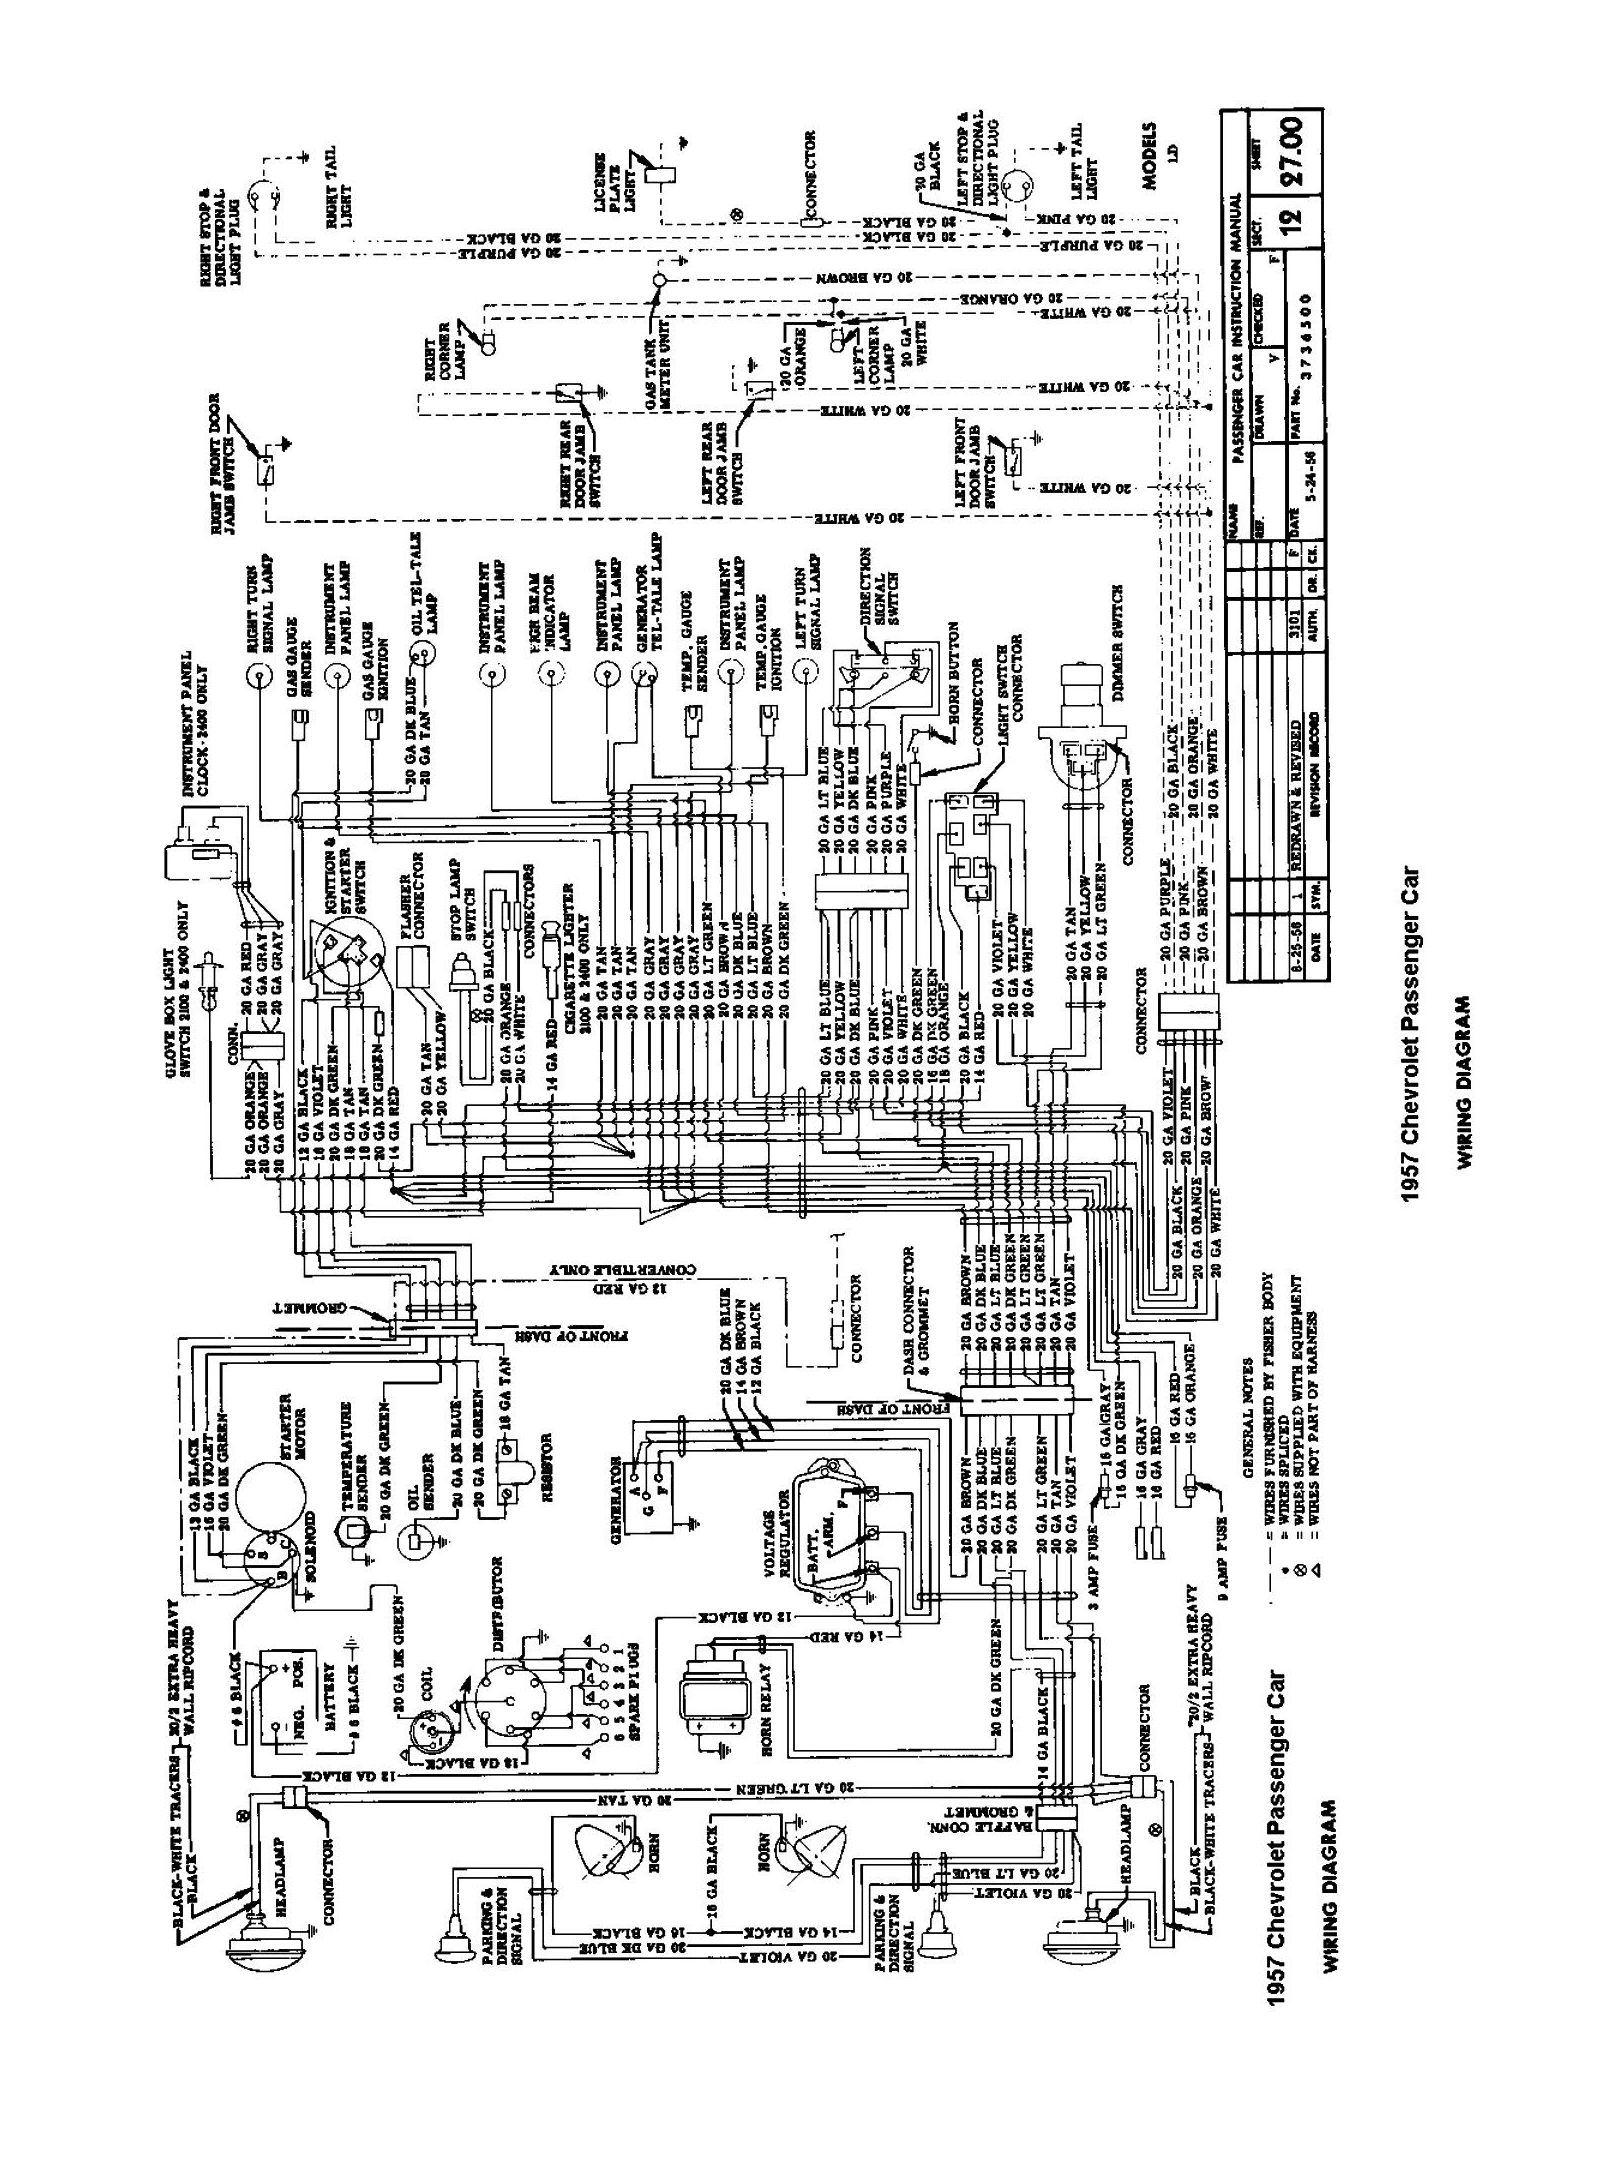 1957 chevy ignition wiring wiring diagram57 chevy wiring harness diagram data wiring diagram1957 chevy ignition wiring wiring library diagram mega 1956